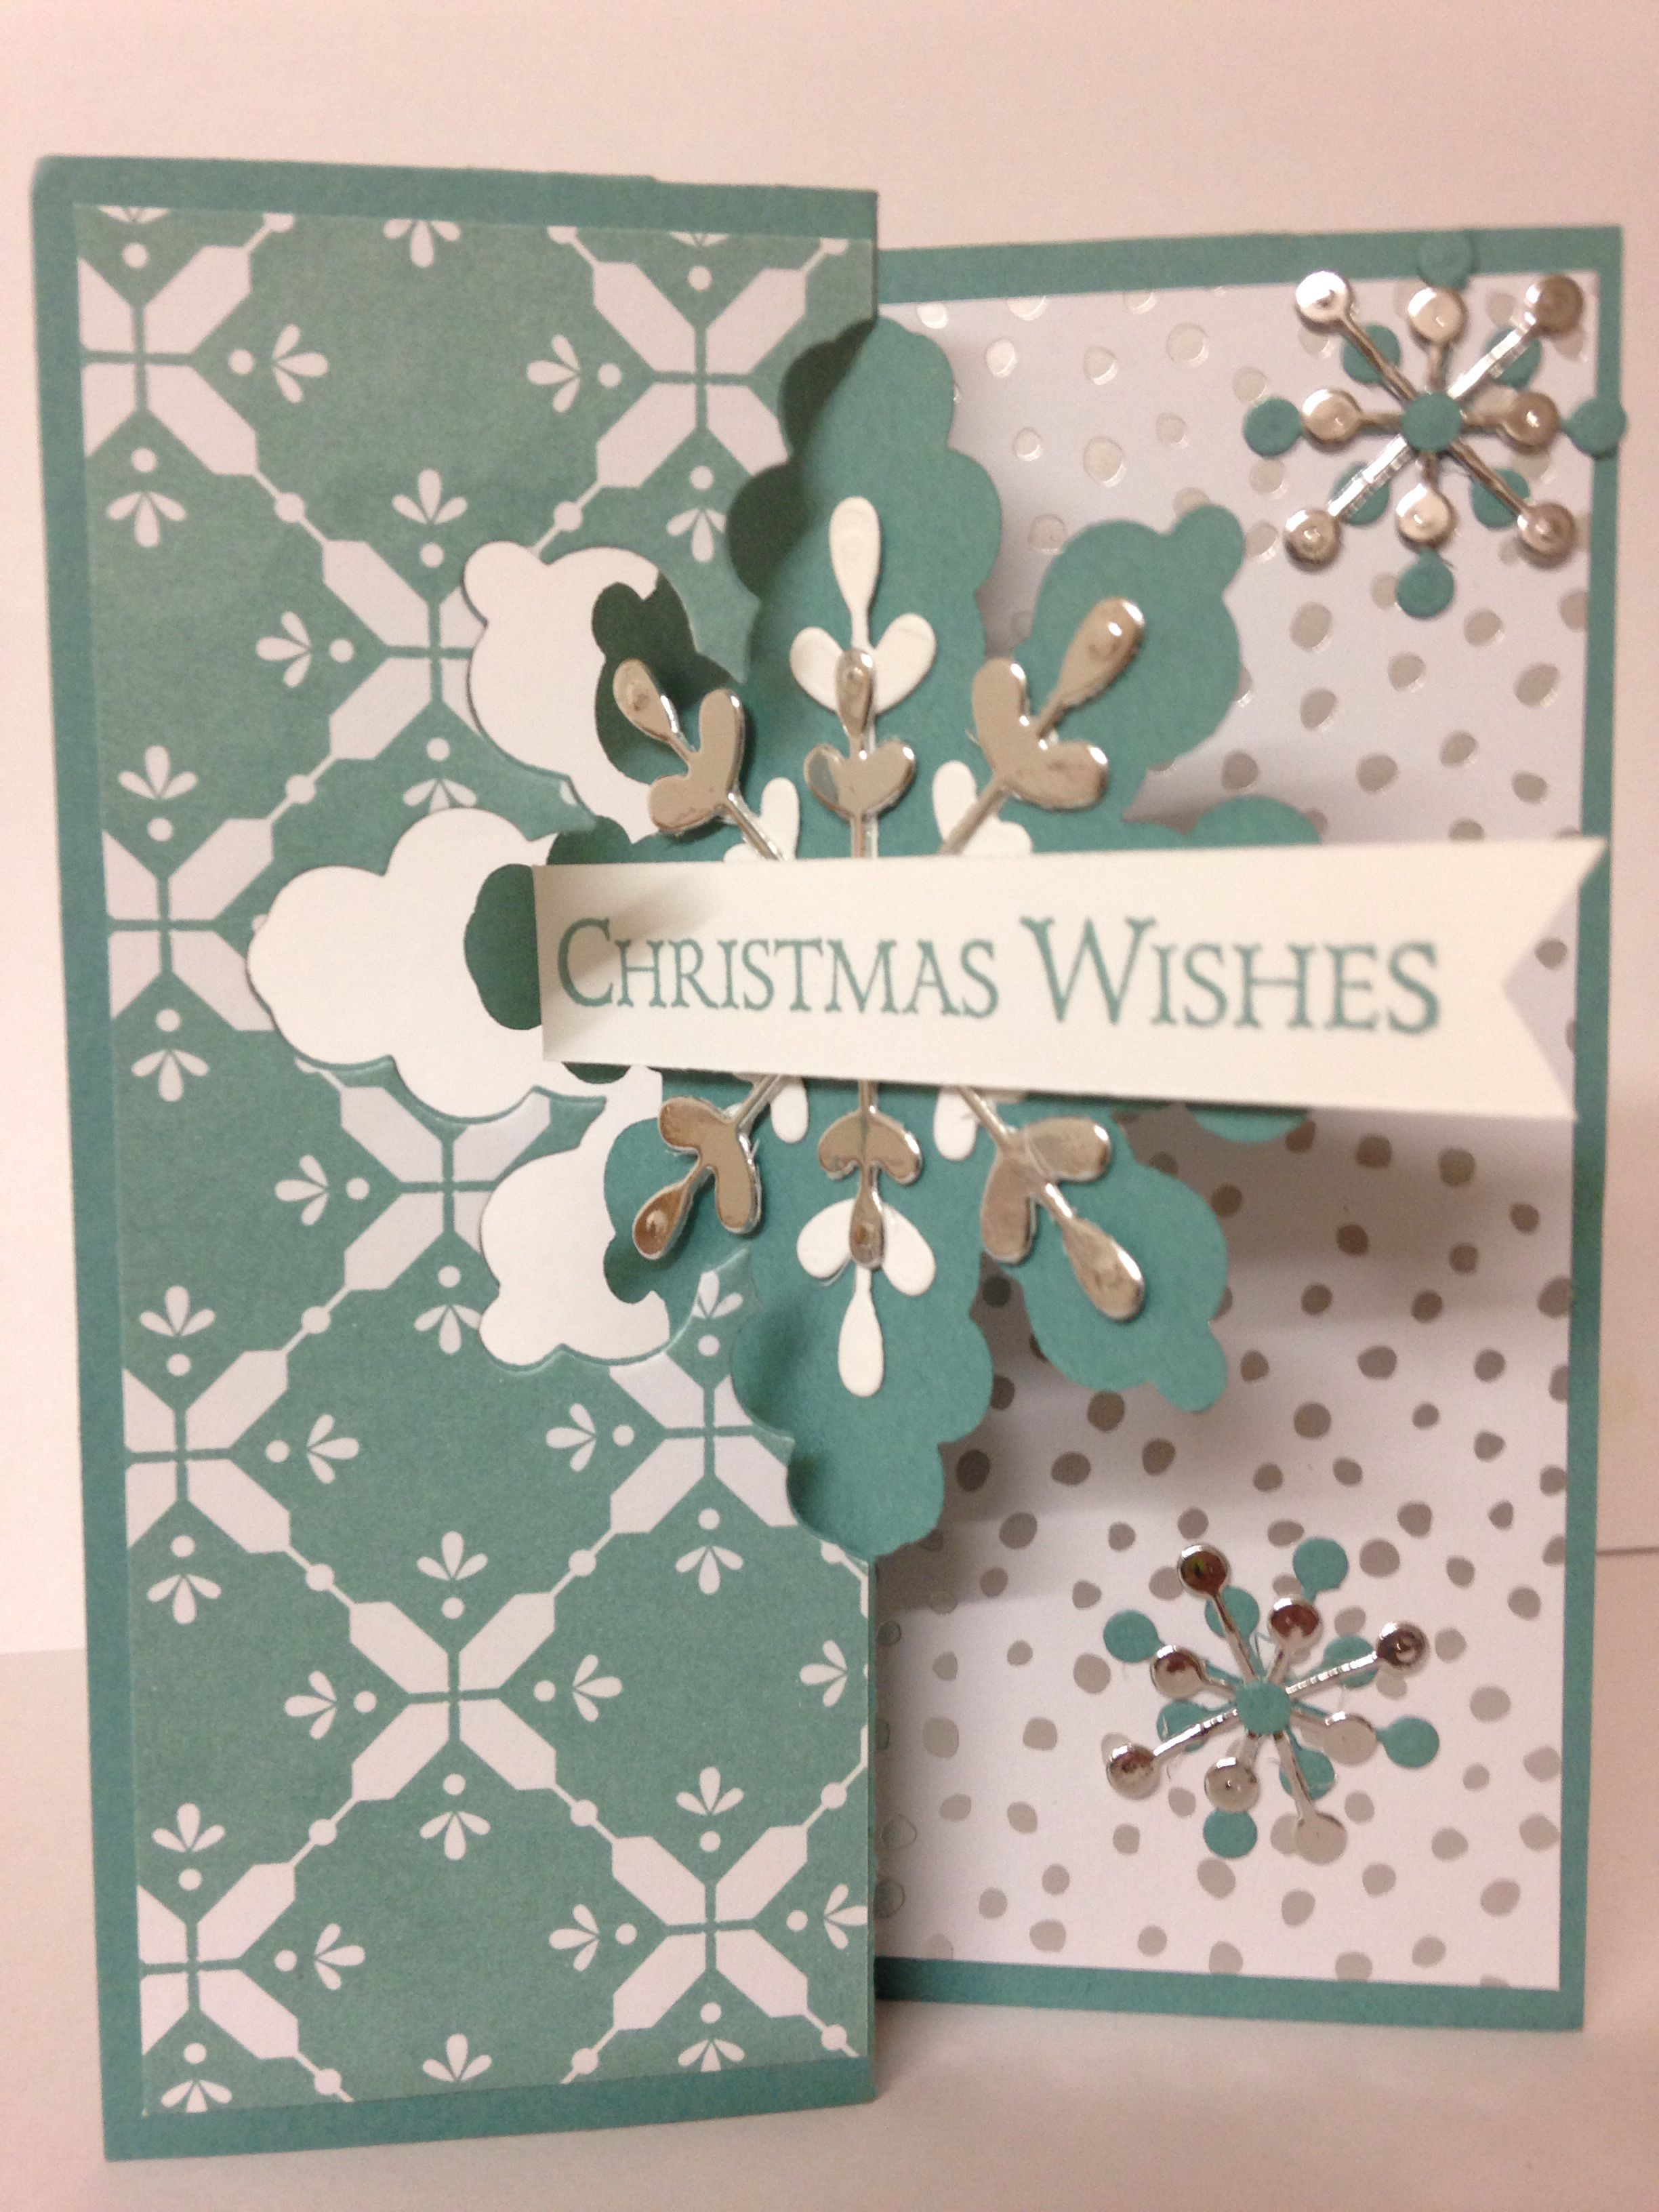 Stampin Up - Snowflake Card thinlits dies with all is calm DSP